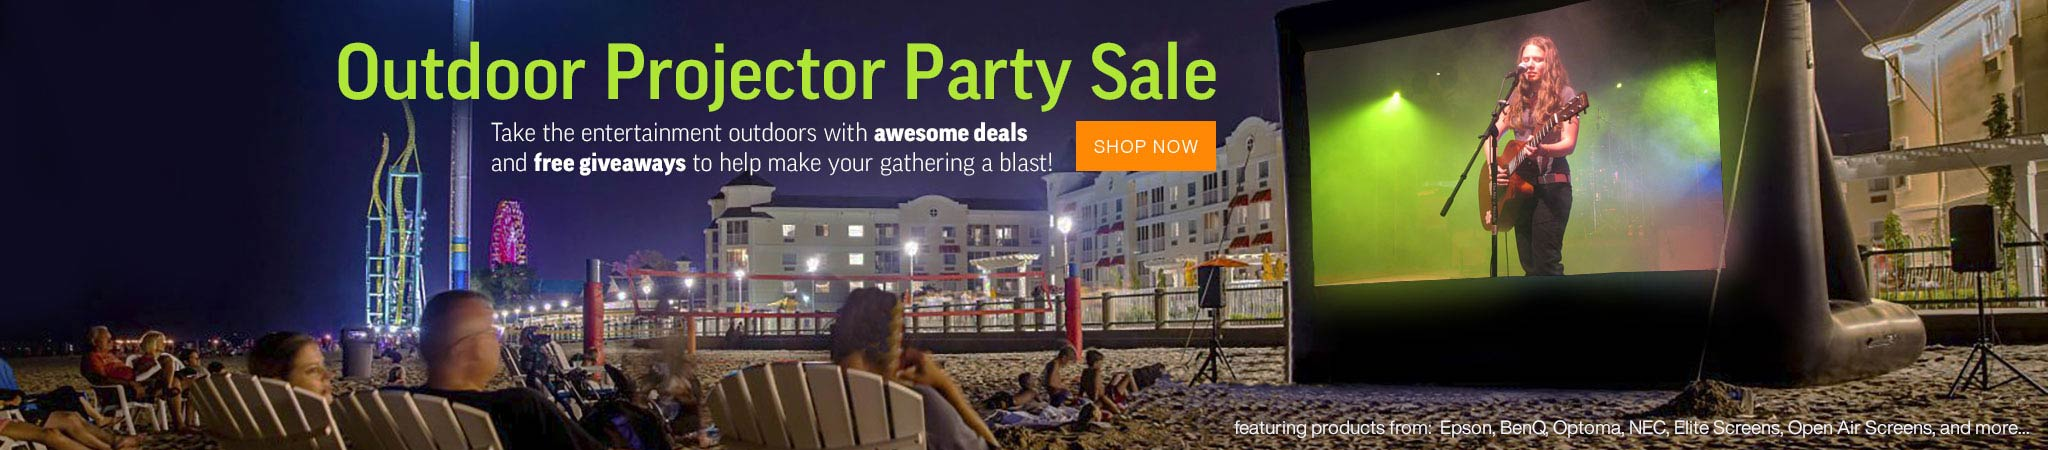 Projector People Outdoor Projector Party Sale